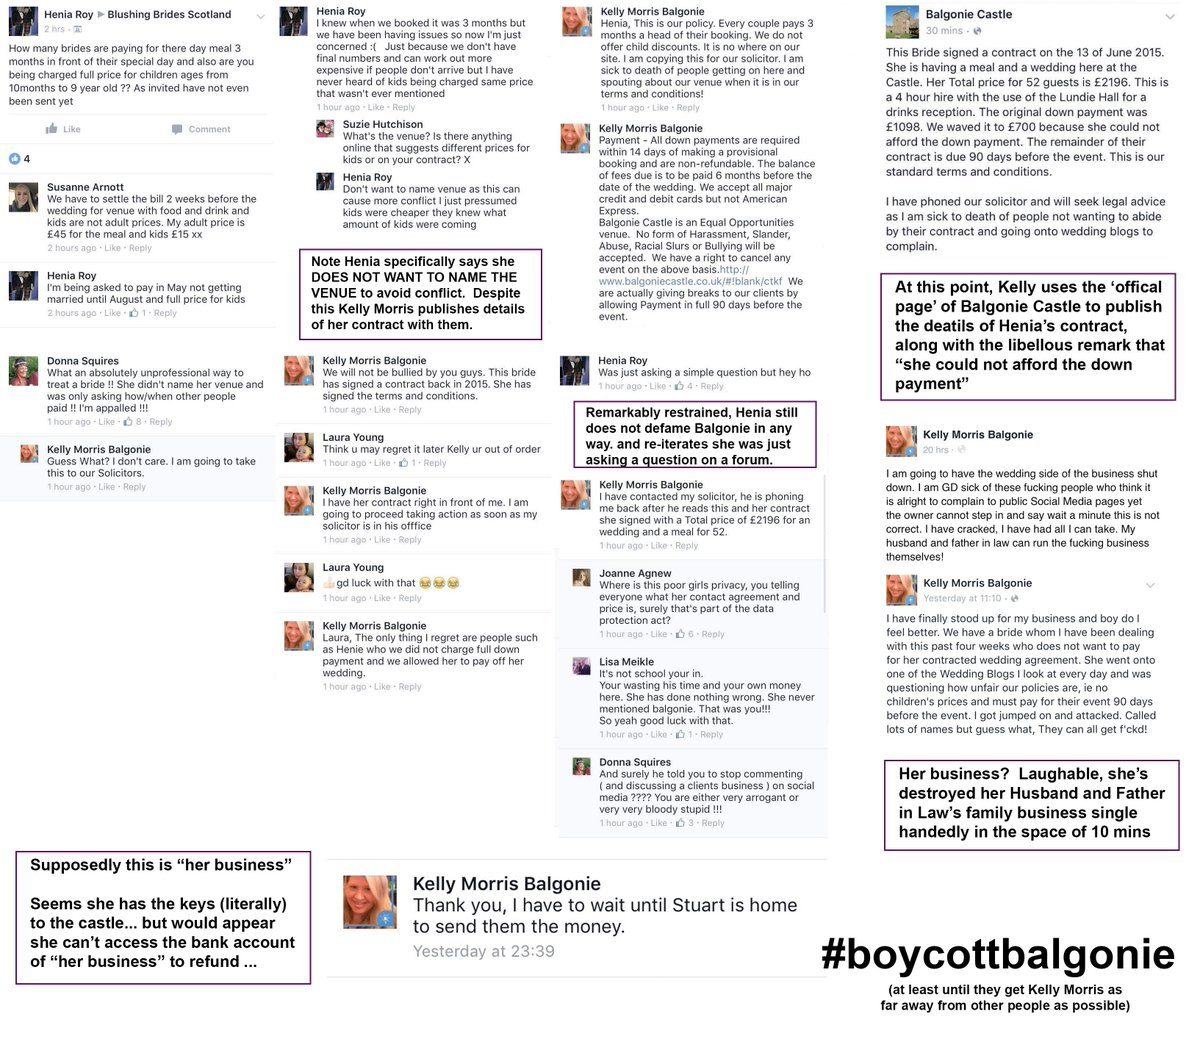 Wondered #boycottbalgonie / @balgoniecastle thing was about? - this is a good summary - how not to do social media! https://t.co/f9tn8m14SA